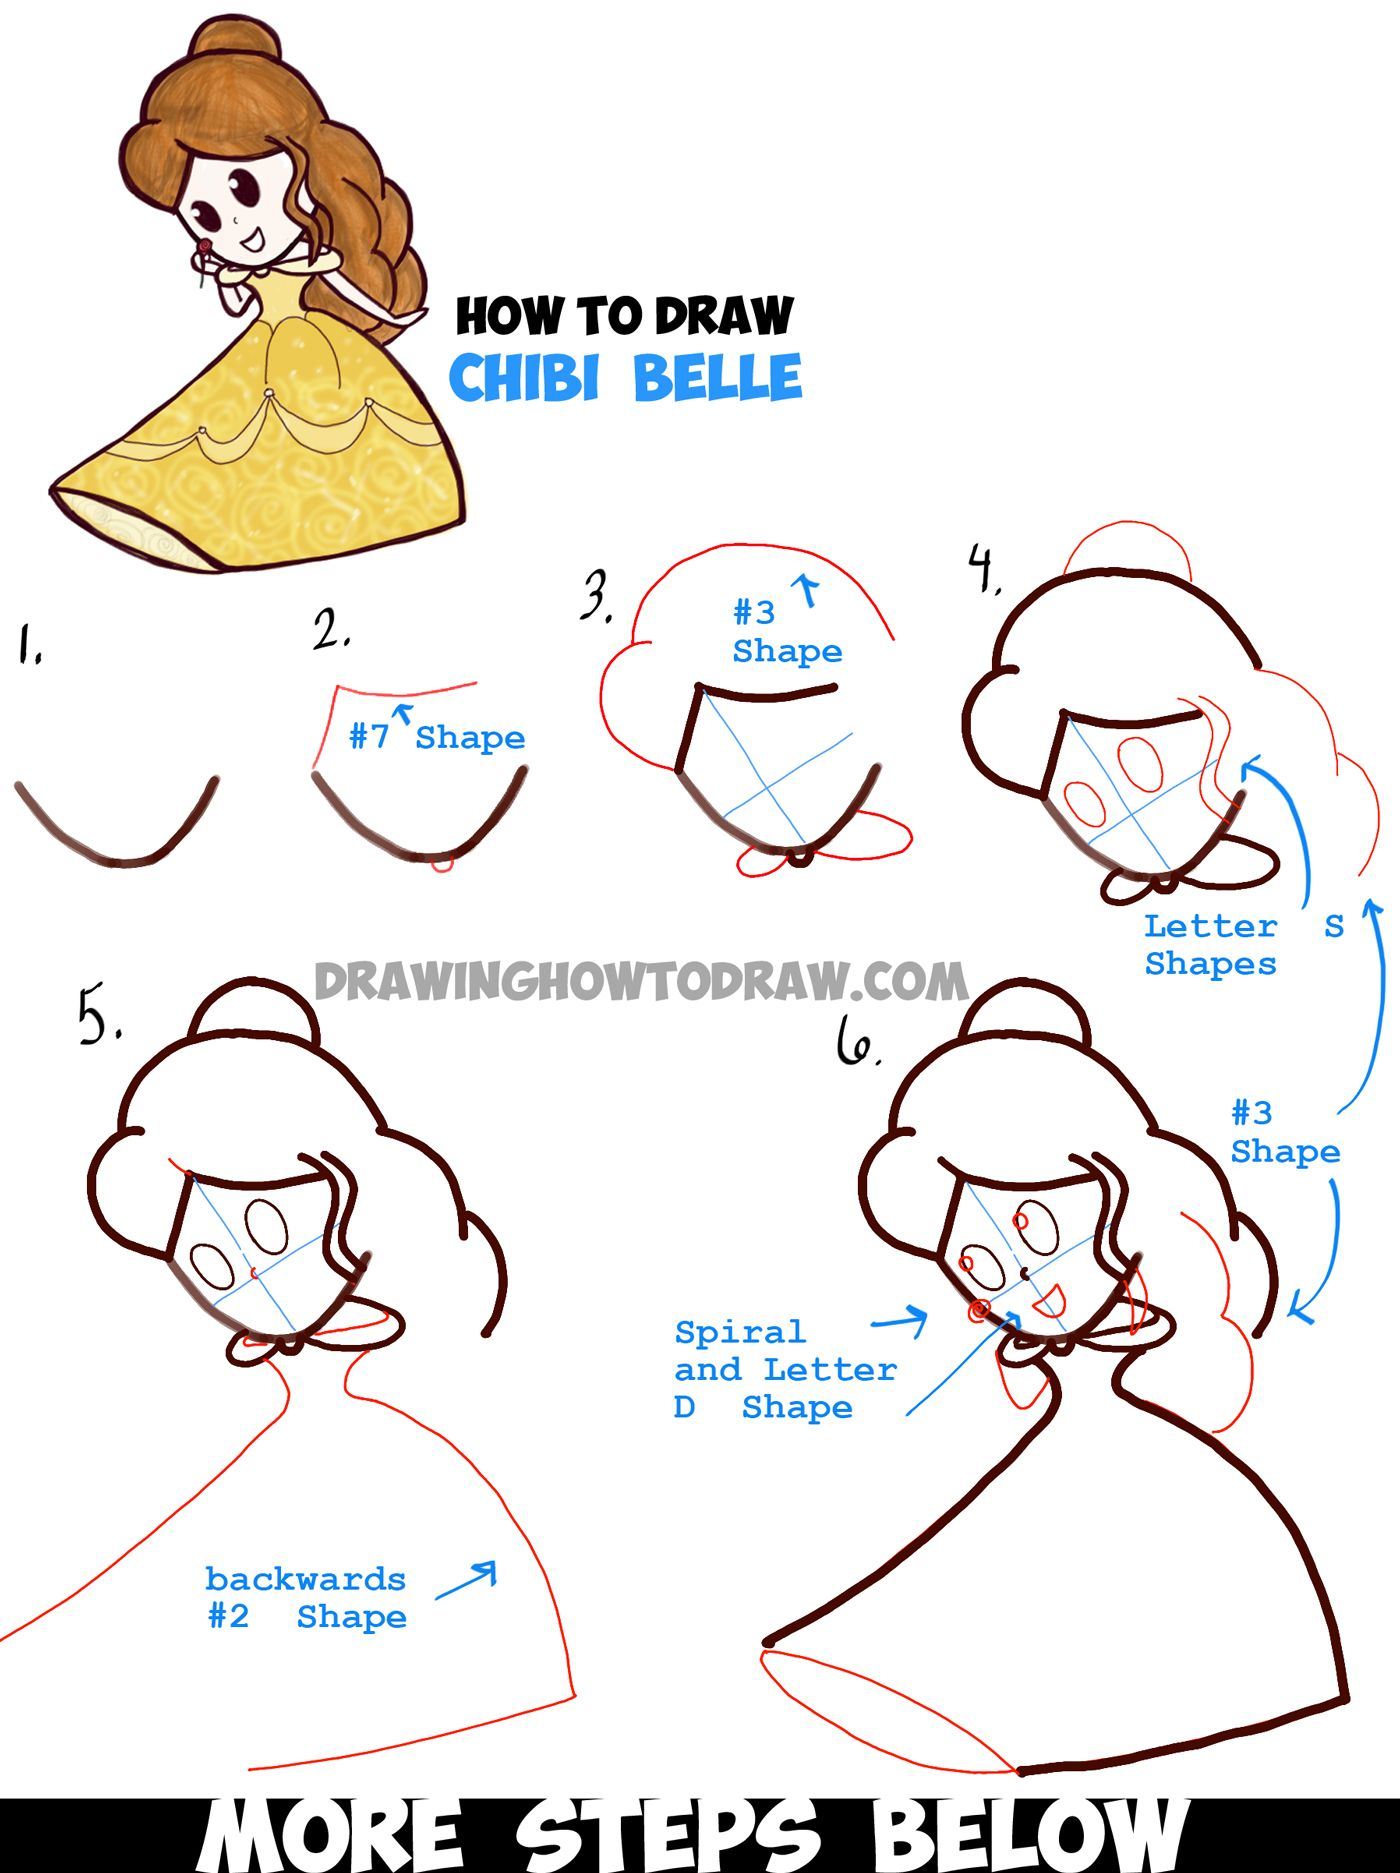 How To Draw Mulan As A Princess Easy Step By Step Drawing Tutorial For Kids And Beginners How To Draw Step By Step Drawing Tutorials Disney Drawing Tutorial Drawing Tutorials